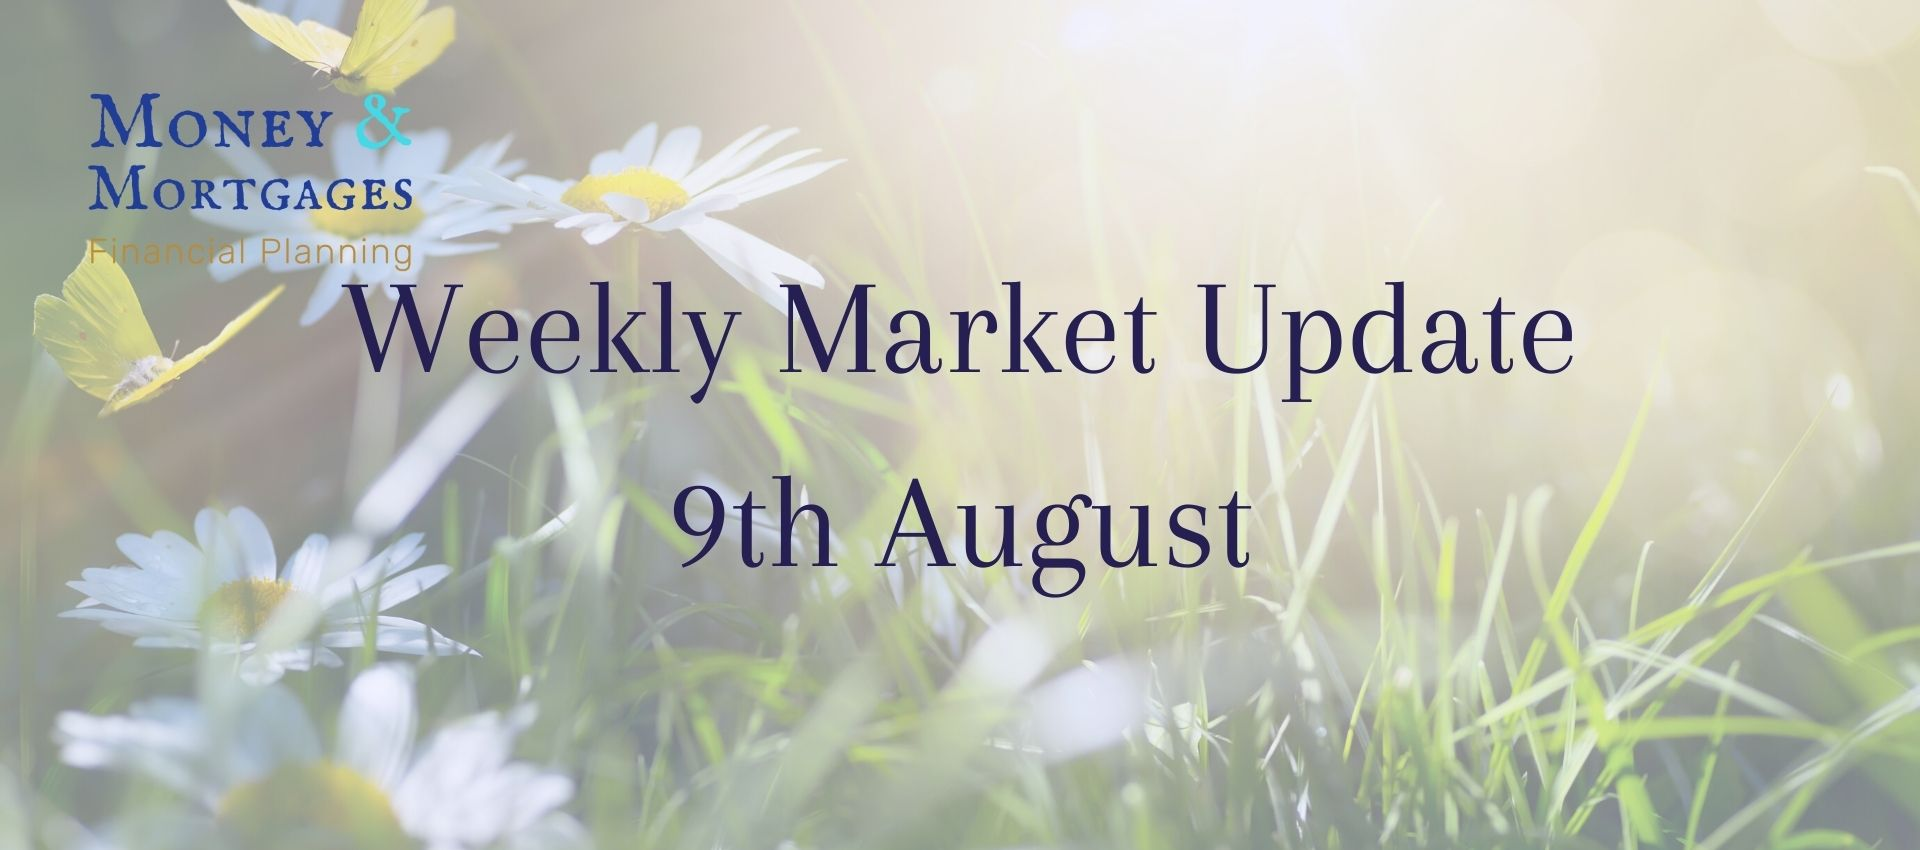 9th August stock market update